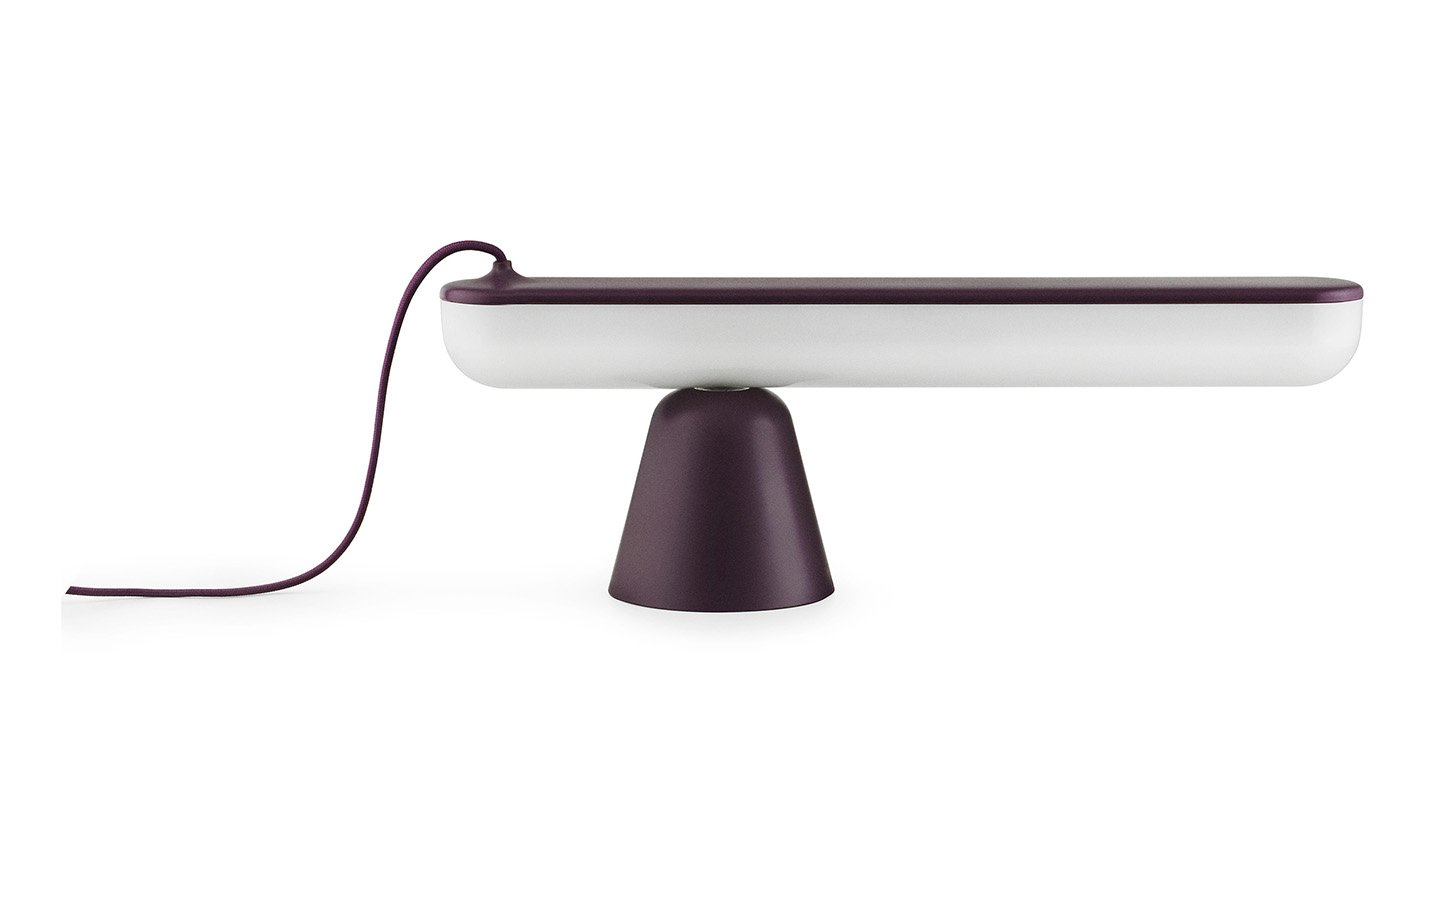 Acrobat table lamp fabiia dubai uae acrobat table lamp aubergine mozeypictures Gallery